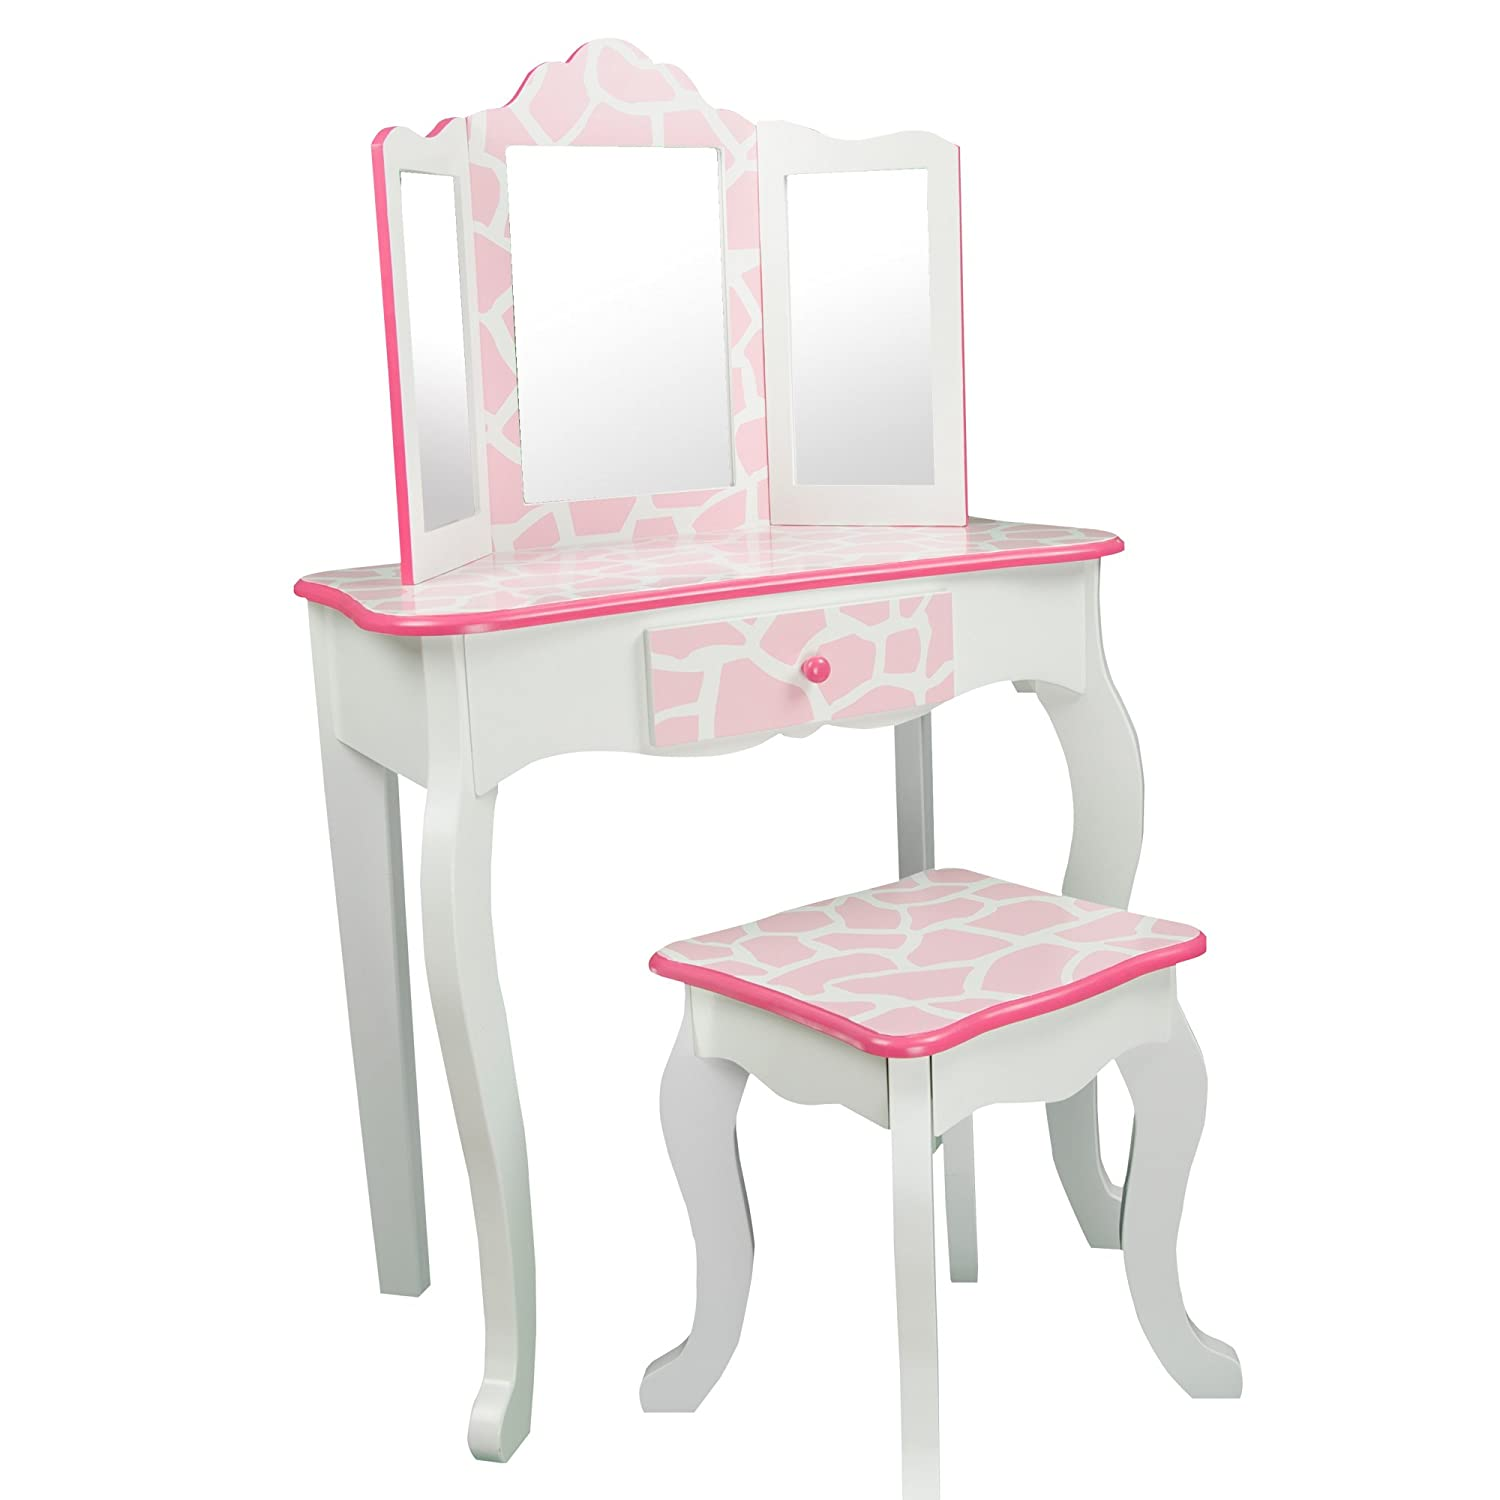 Amazon com  Teamson Kids   Fashion Prints Girls Vanity Table and Stool Set  with Mirror   Giraffe  Baby Pink   White  Toys   GamesAmazon com  Teamson Kids   Fashion Prints Girls Vanity Table and  . Off White Vanity Table. Home Design Ideas